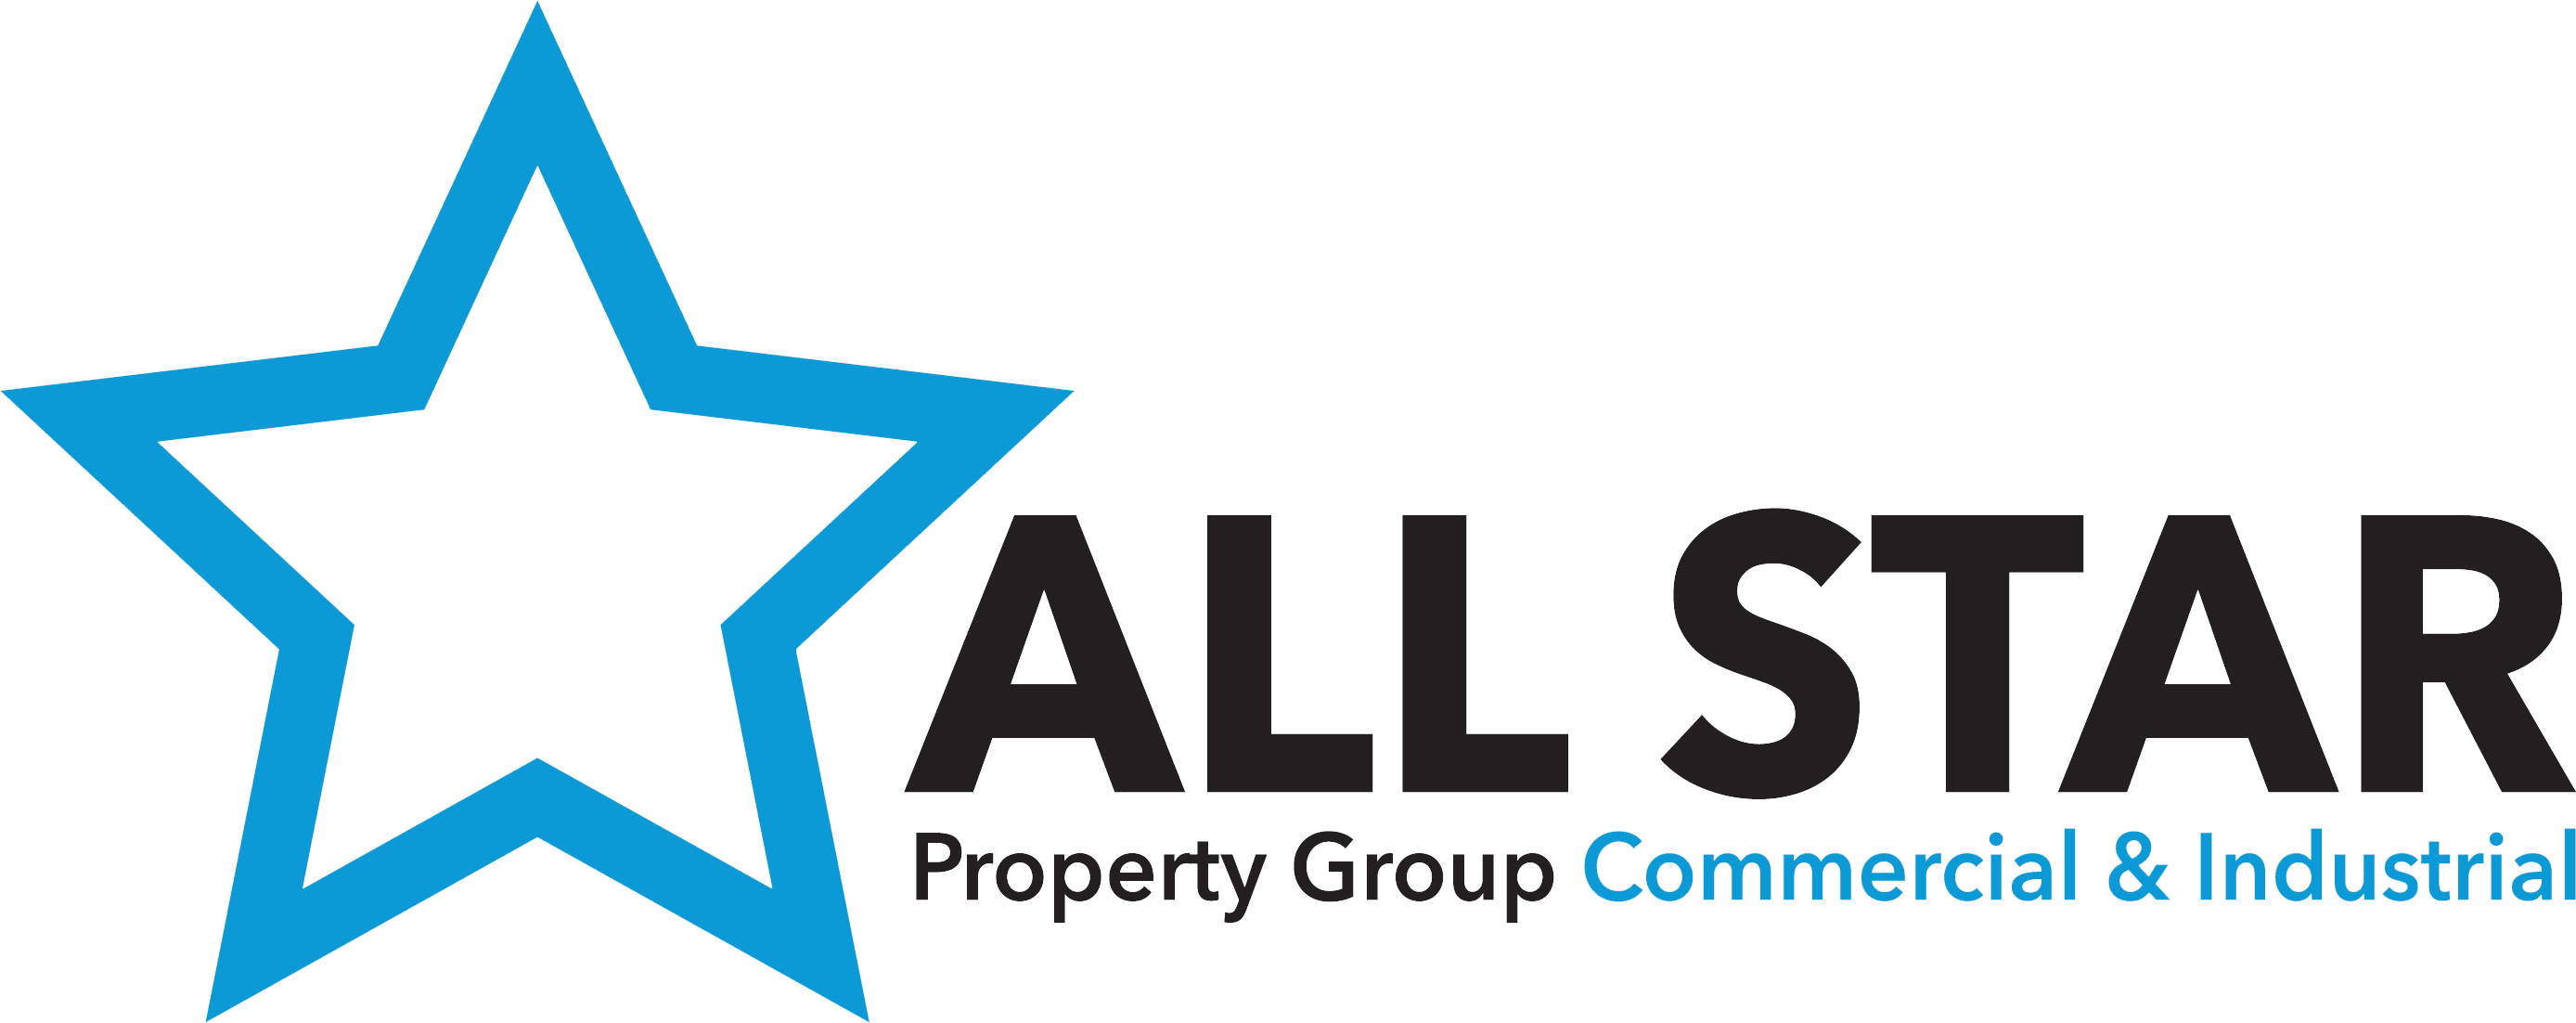 All Star Property Group